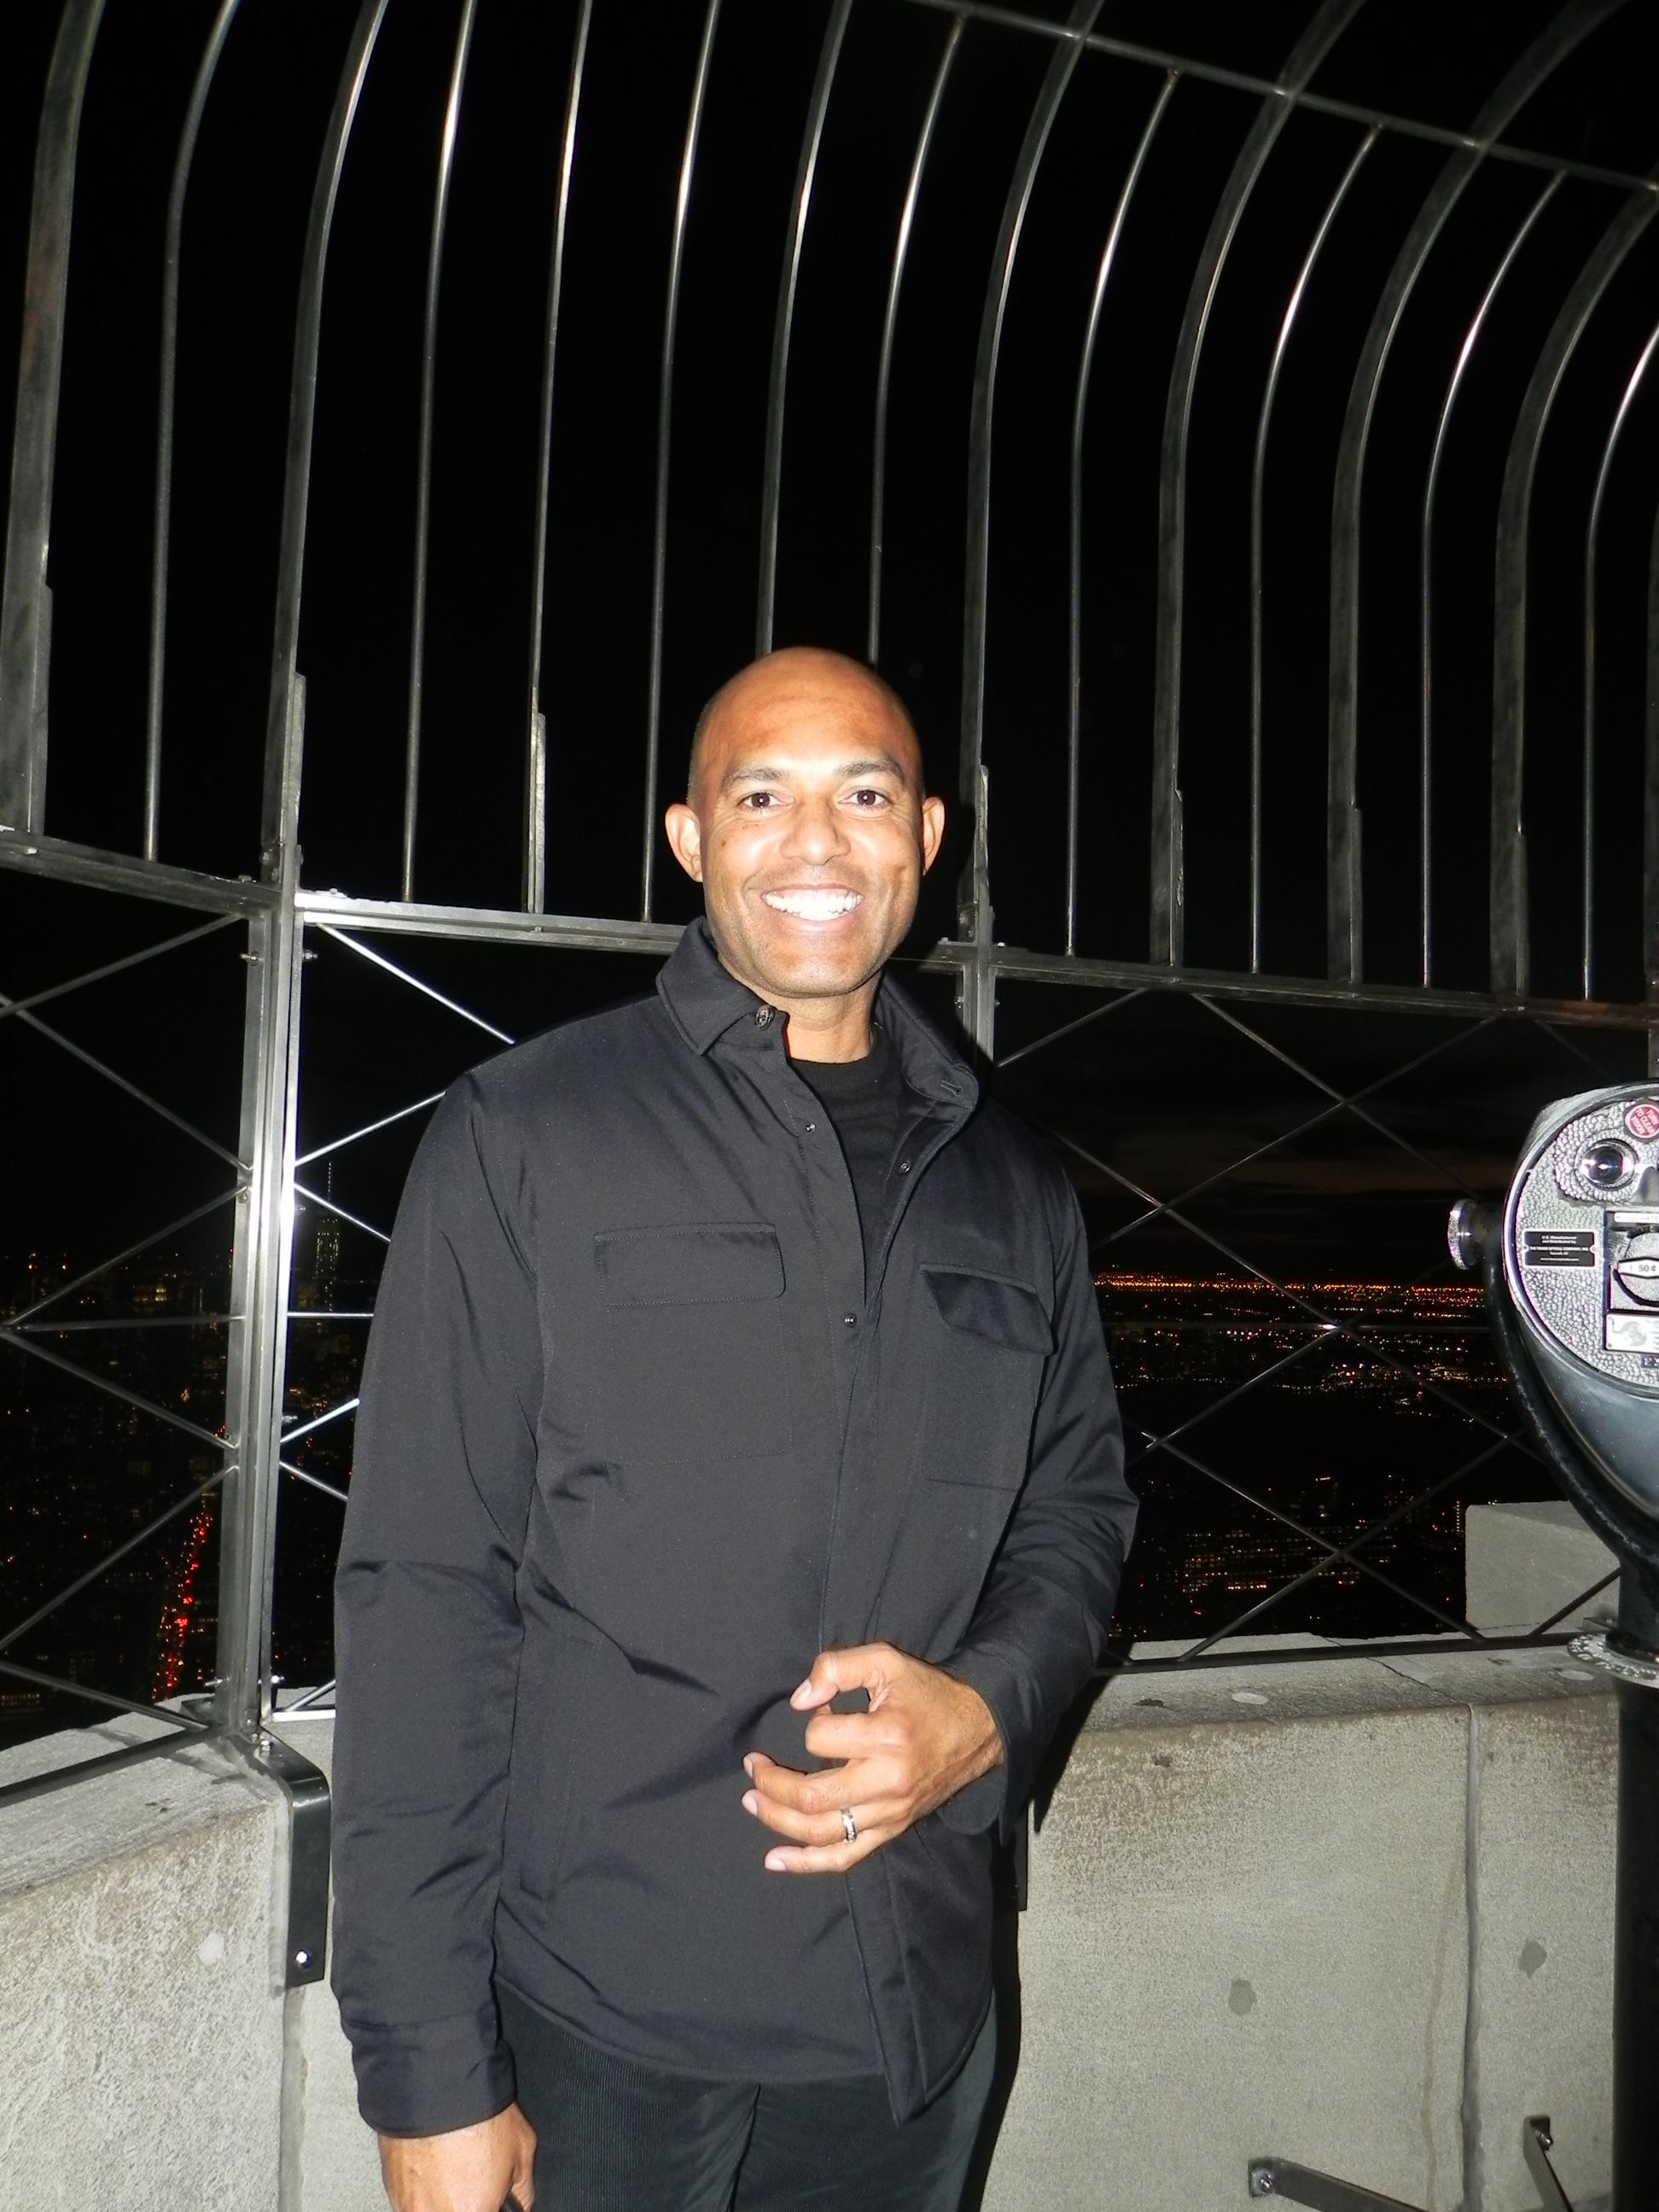 October 20, 2014: Former @yankeesbaseball pitcher Mariano Rivera takes in the evening views from the Empire State Building.